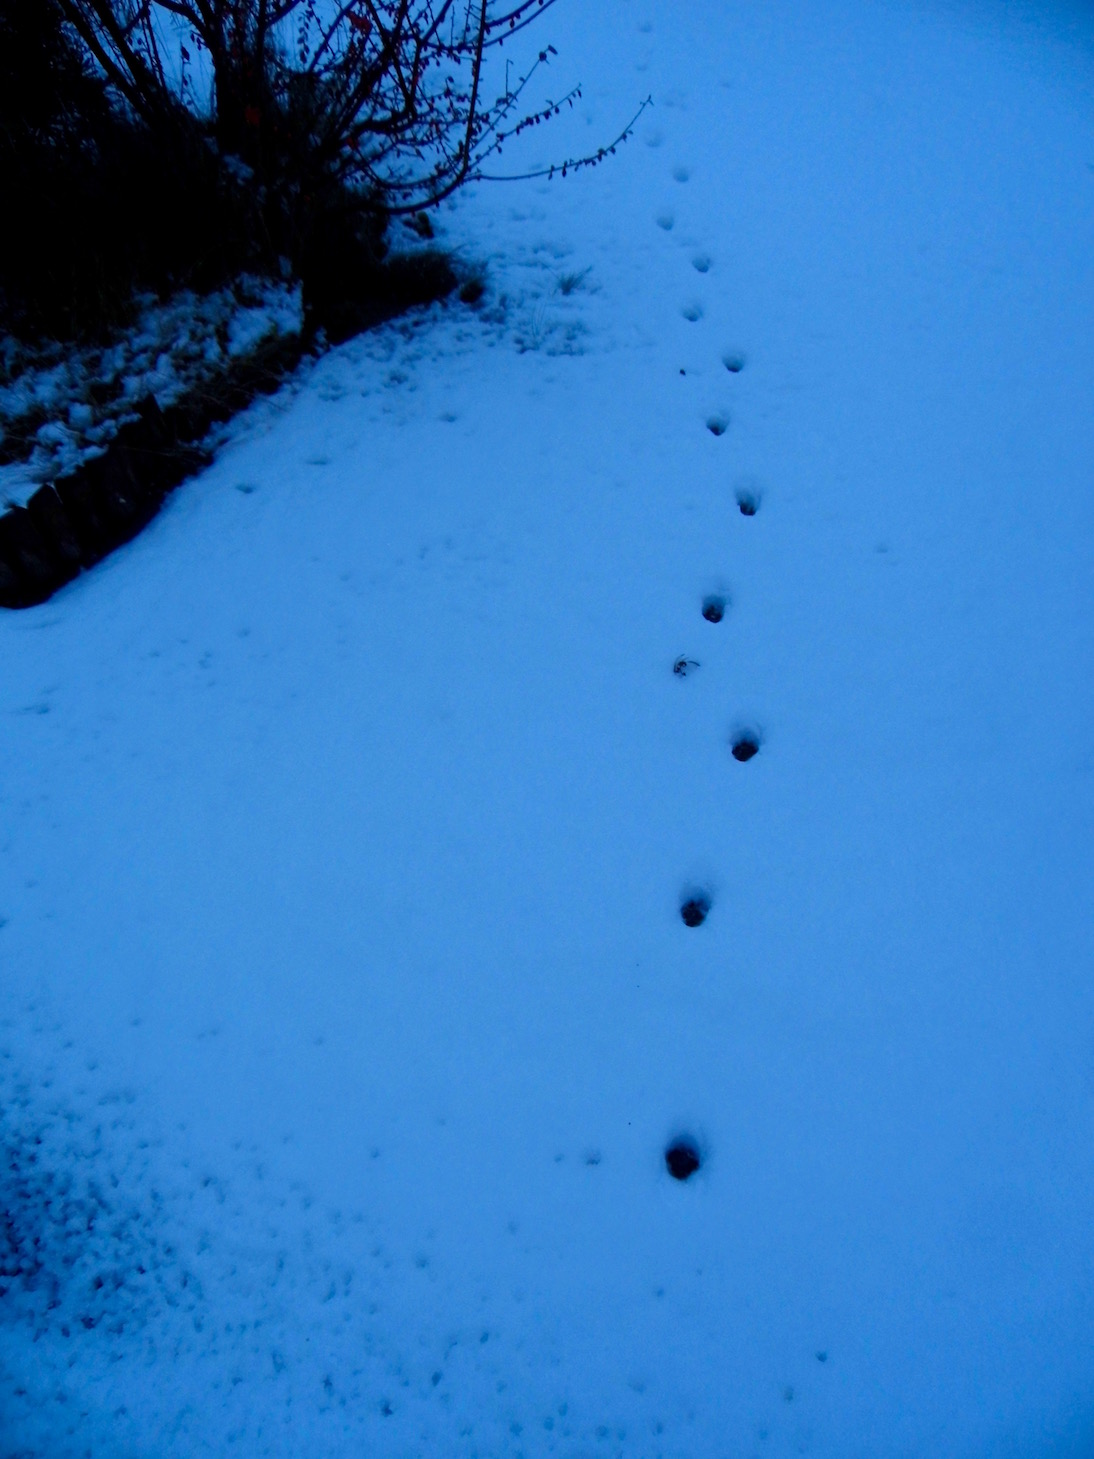 Footsteps in the snow, New Year 2018. Stars & Stems blog, Emerald Dunne Art.